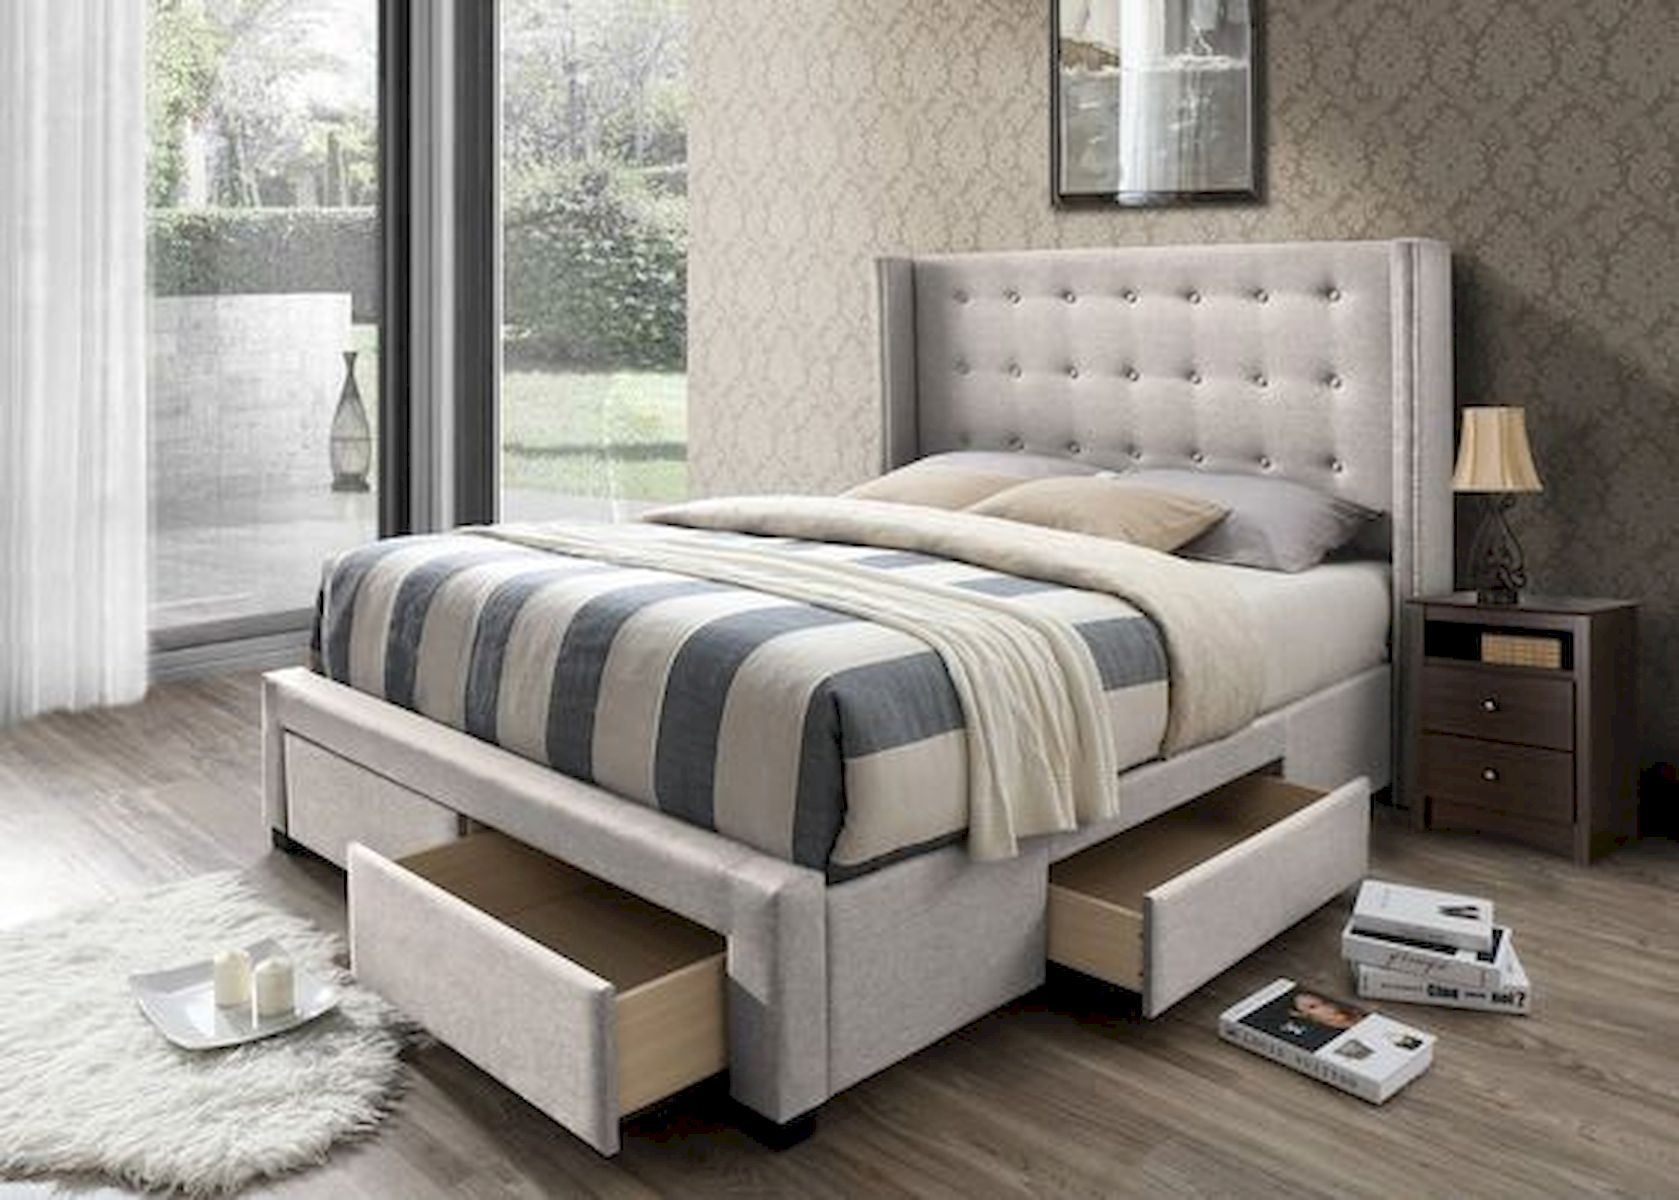 60 Brilliant Space Saving Ideas For Small Bedroom (60)